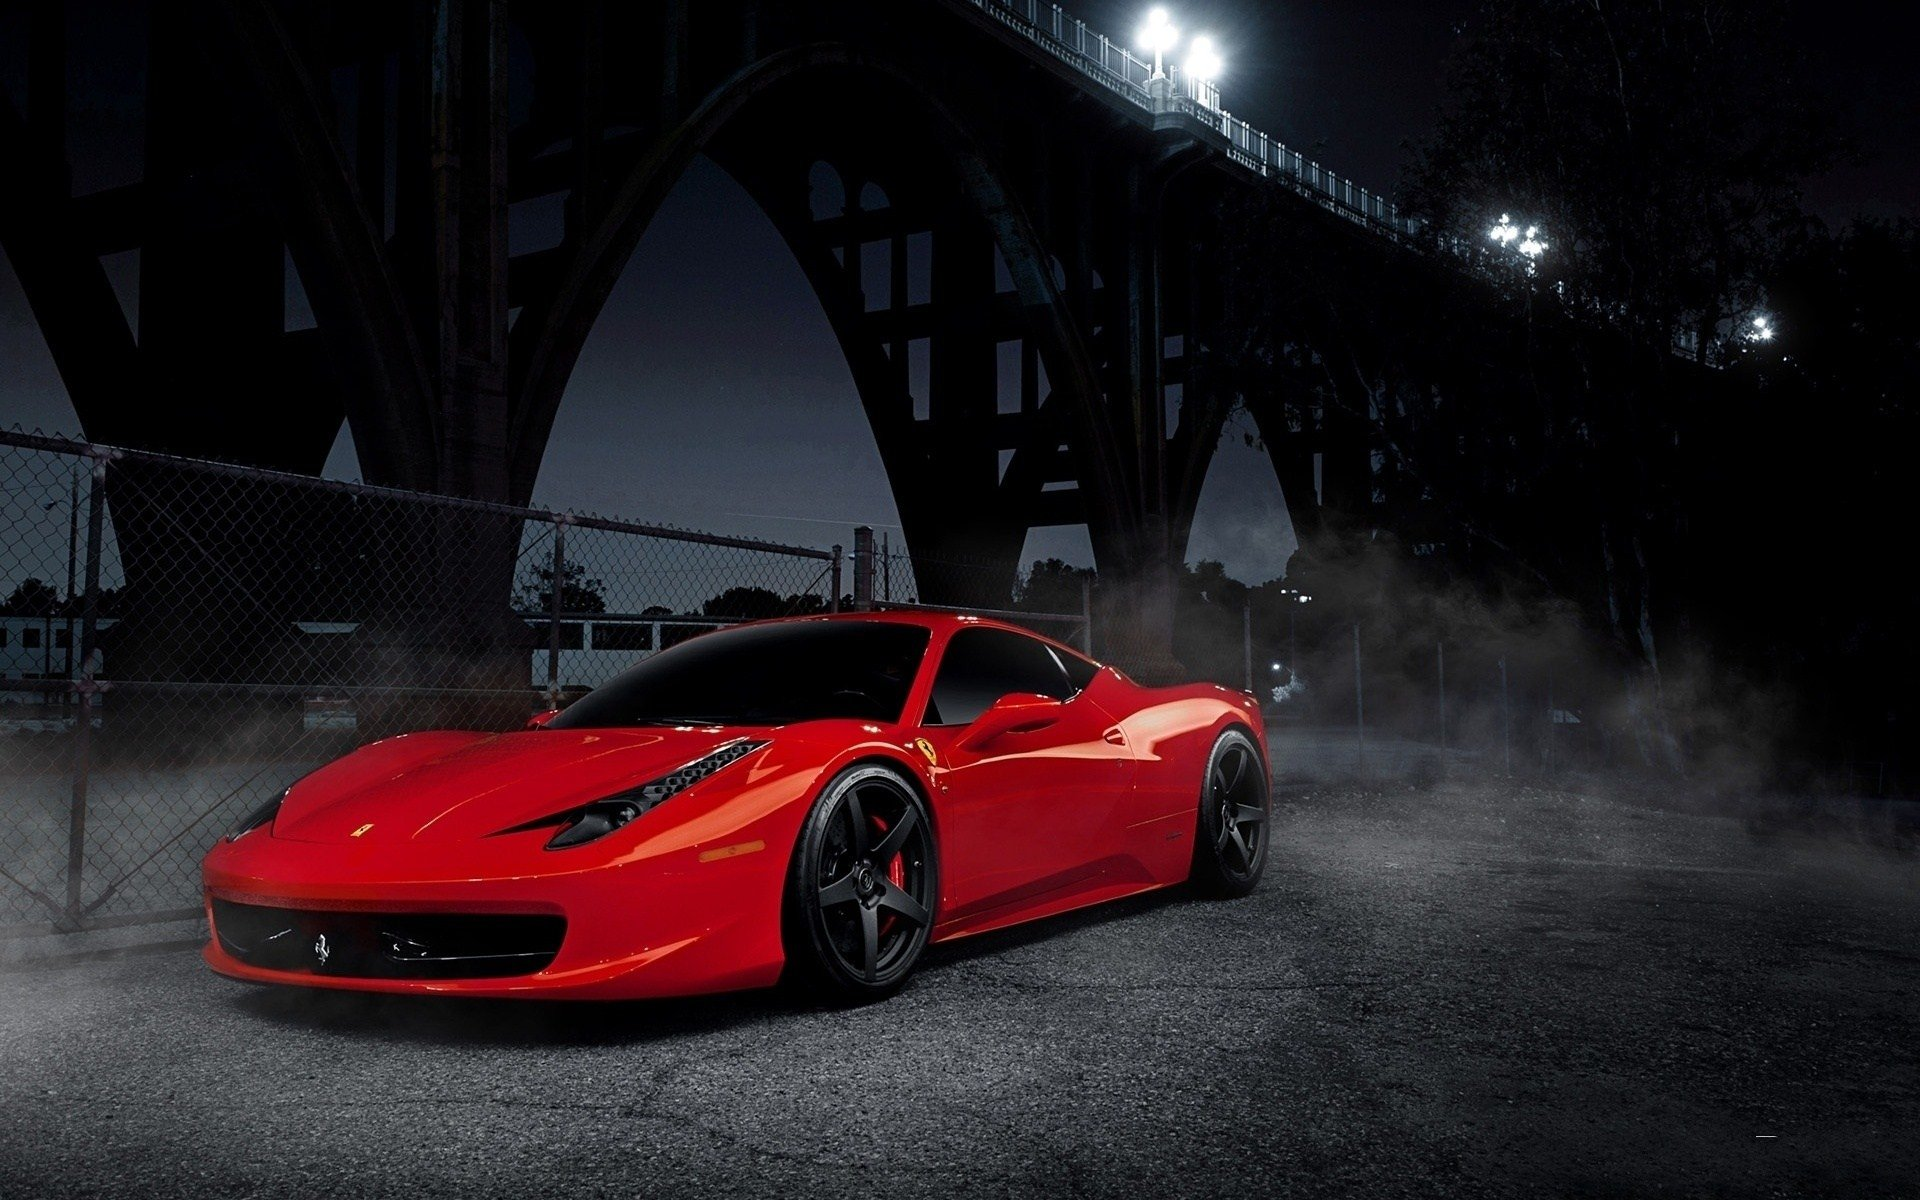 hd wallpaper background id447752 1920x1200 vehicles ferrari 458 italia 6 like - Ferrari 458 Italia Wallpaper 19201080